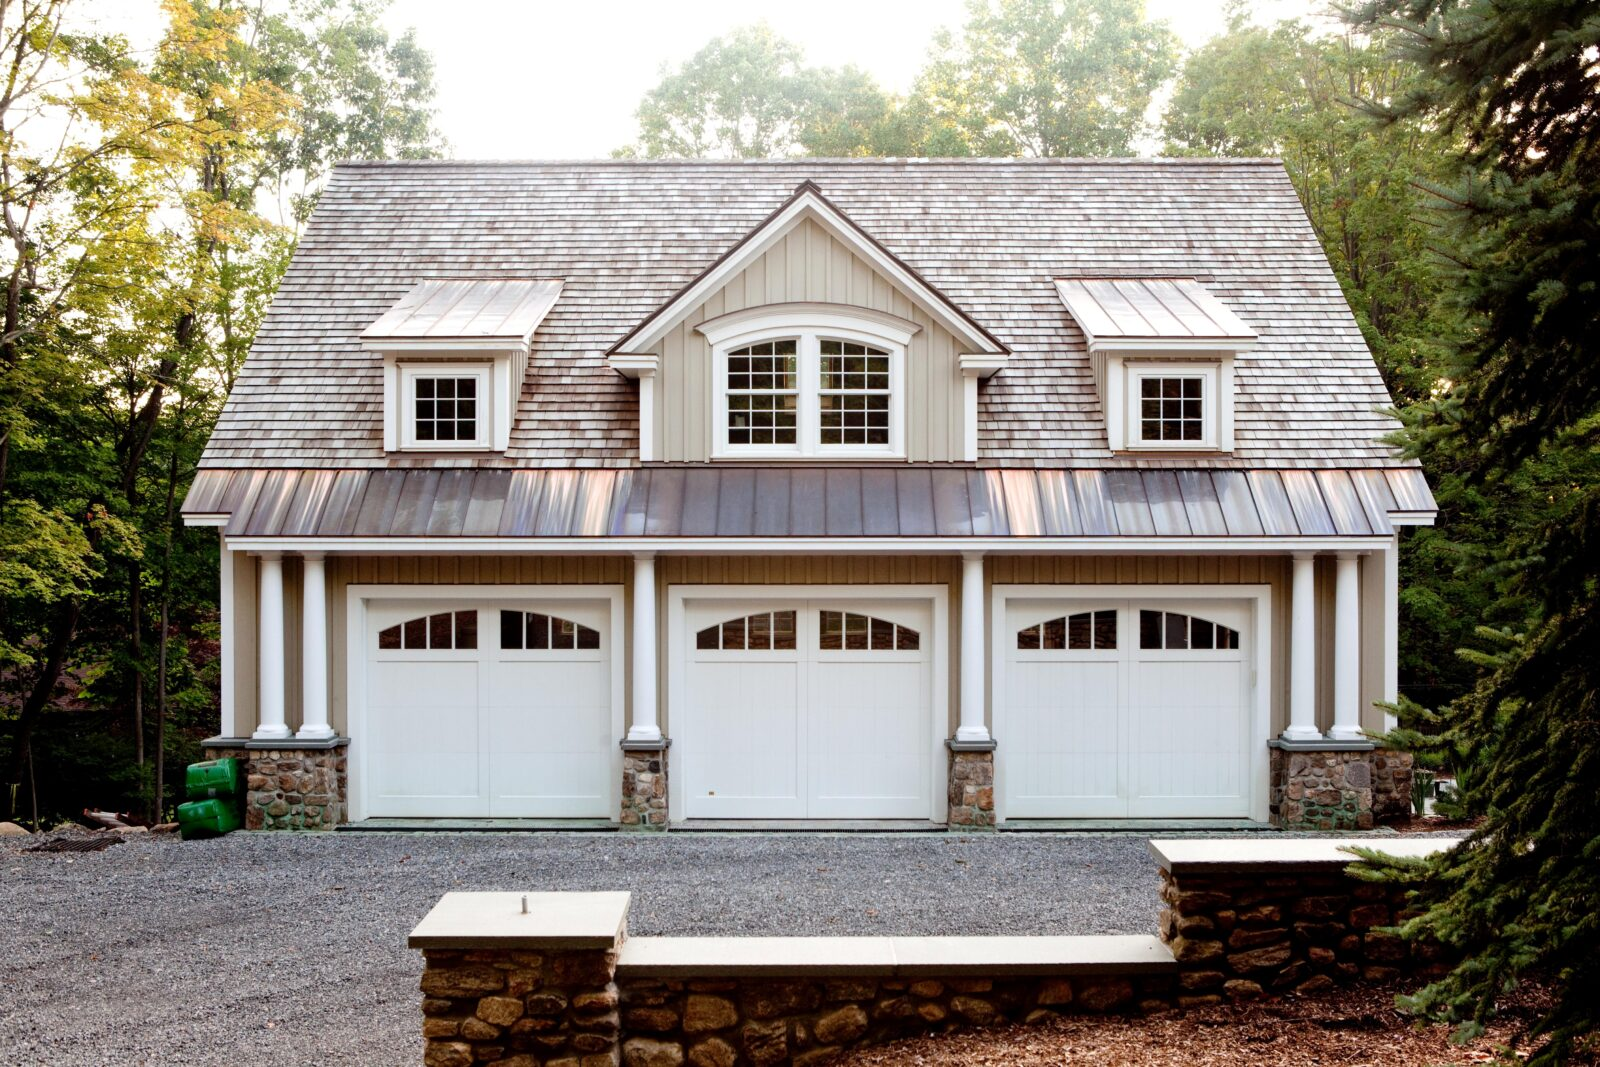 Barn carriage house joy studio design gallery best design for Homes with detached garage